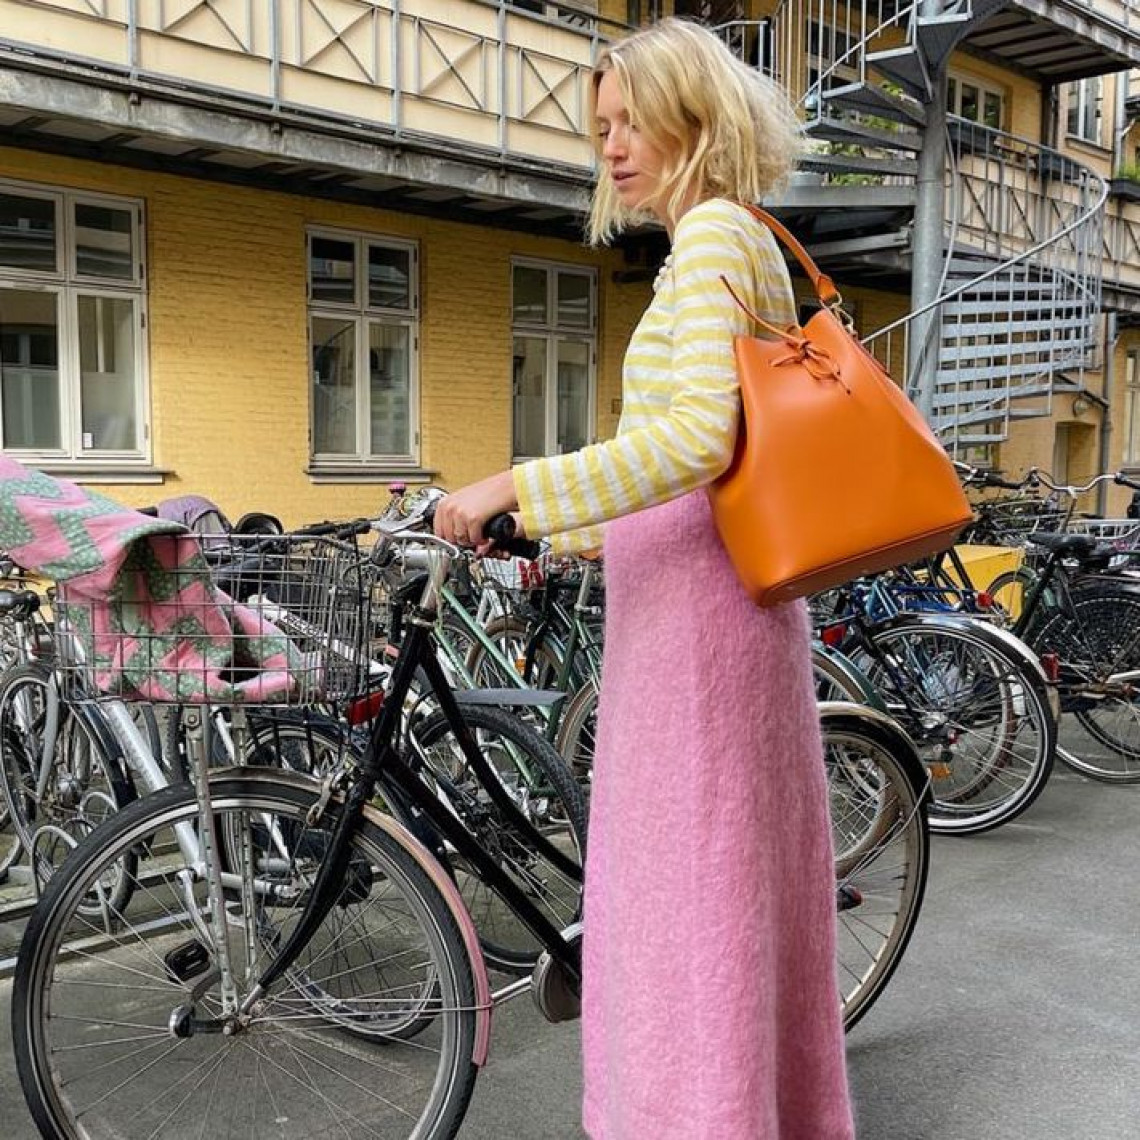 OUR NEW STATEMENT SHADE ORANGE – IN CONVERSATION WITH PERNILLE ROSENKILDE